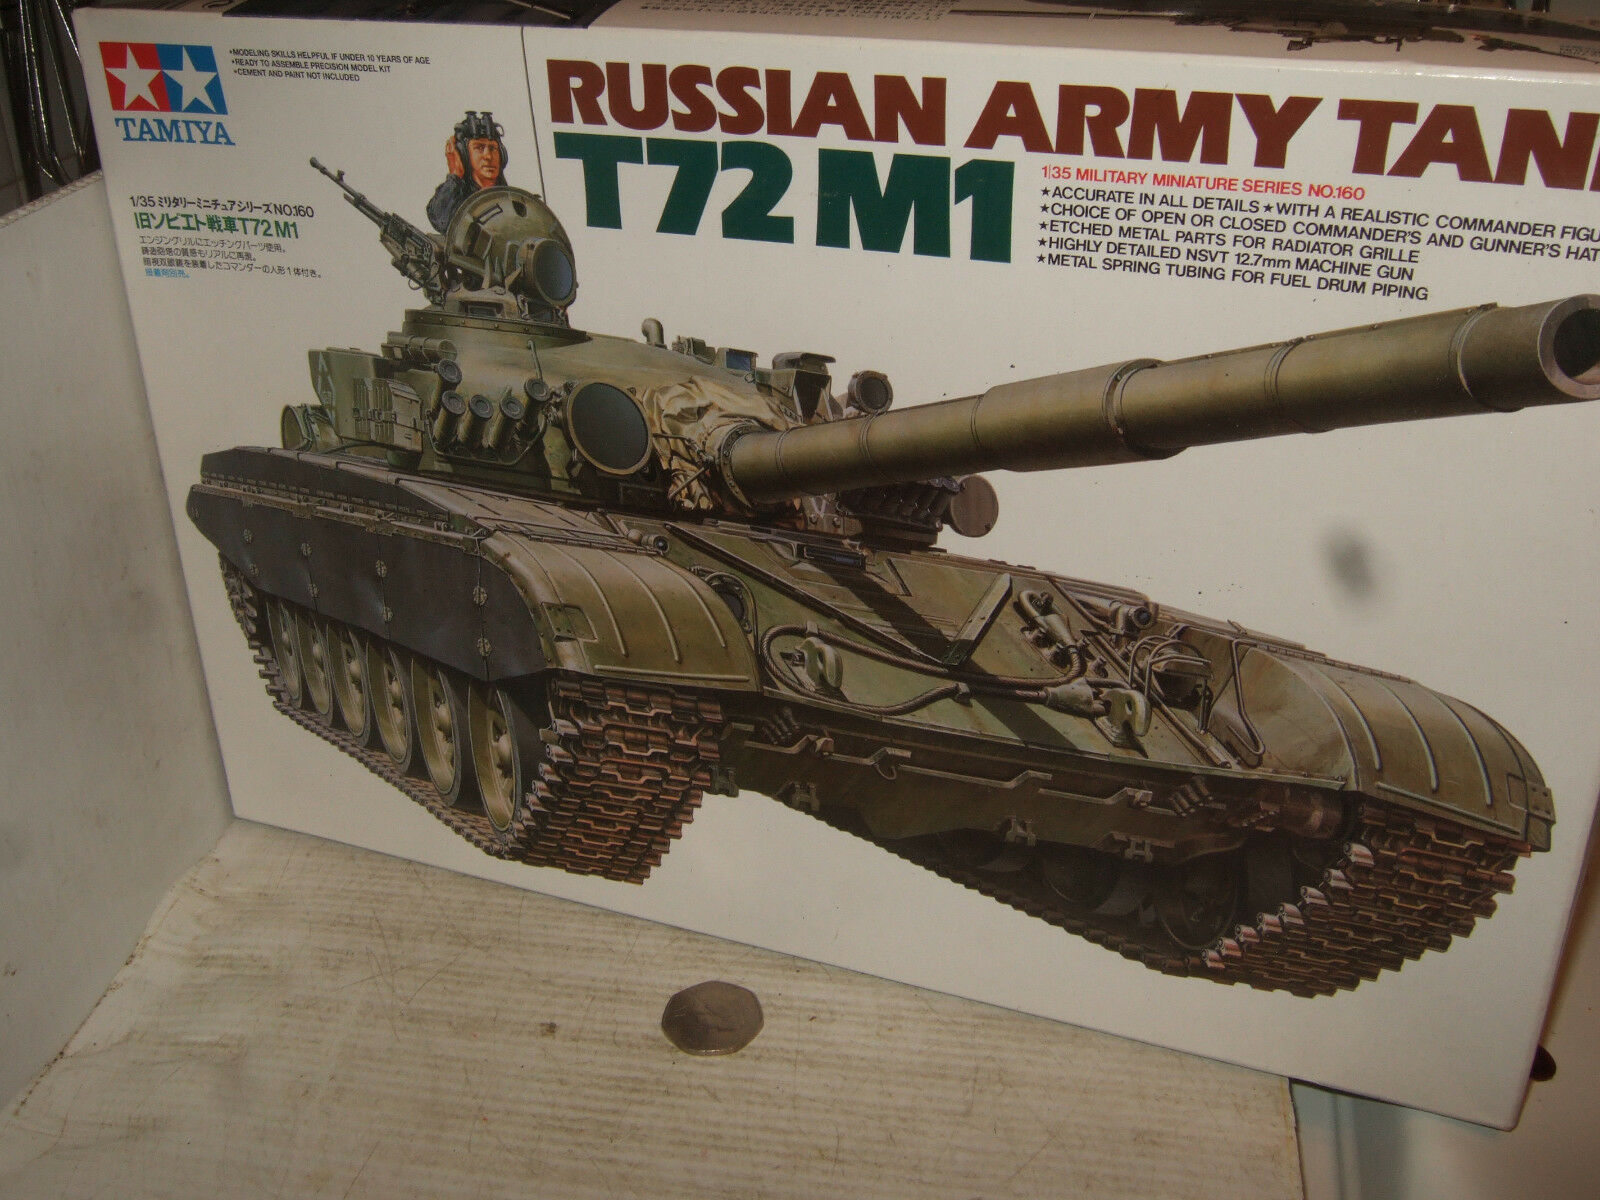 Tamiya 35160 Russian Army Tank T72 M1 Model Kit in 1 35 Scale.